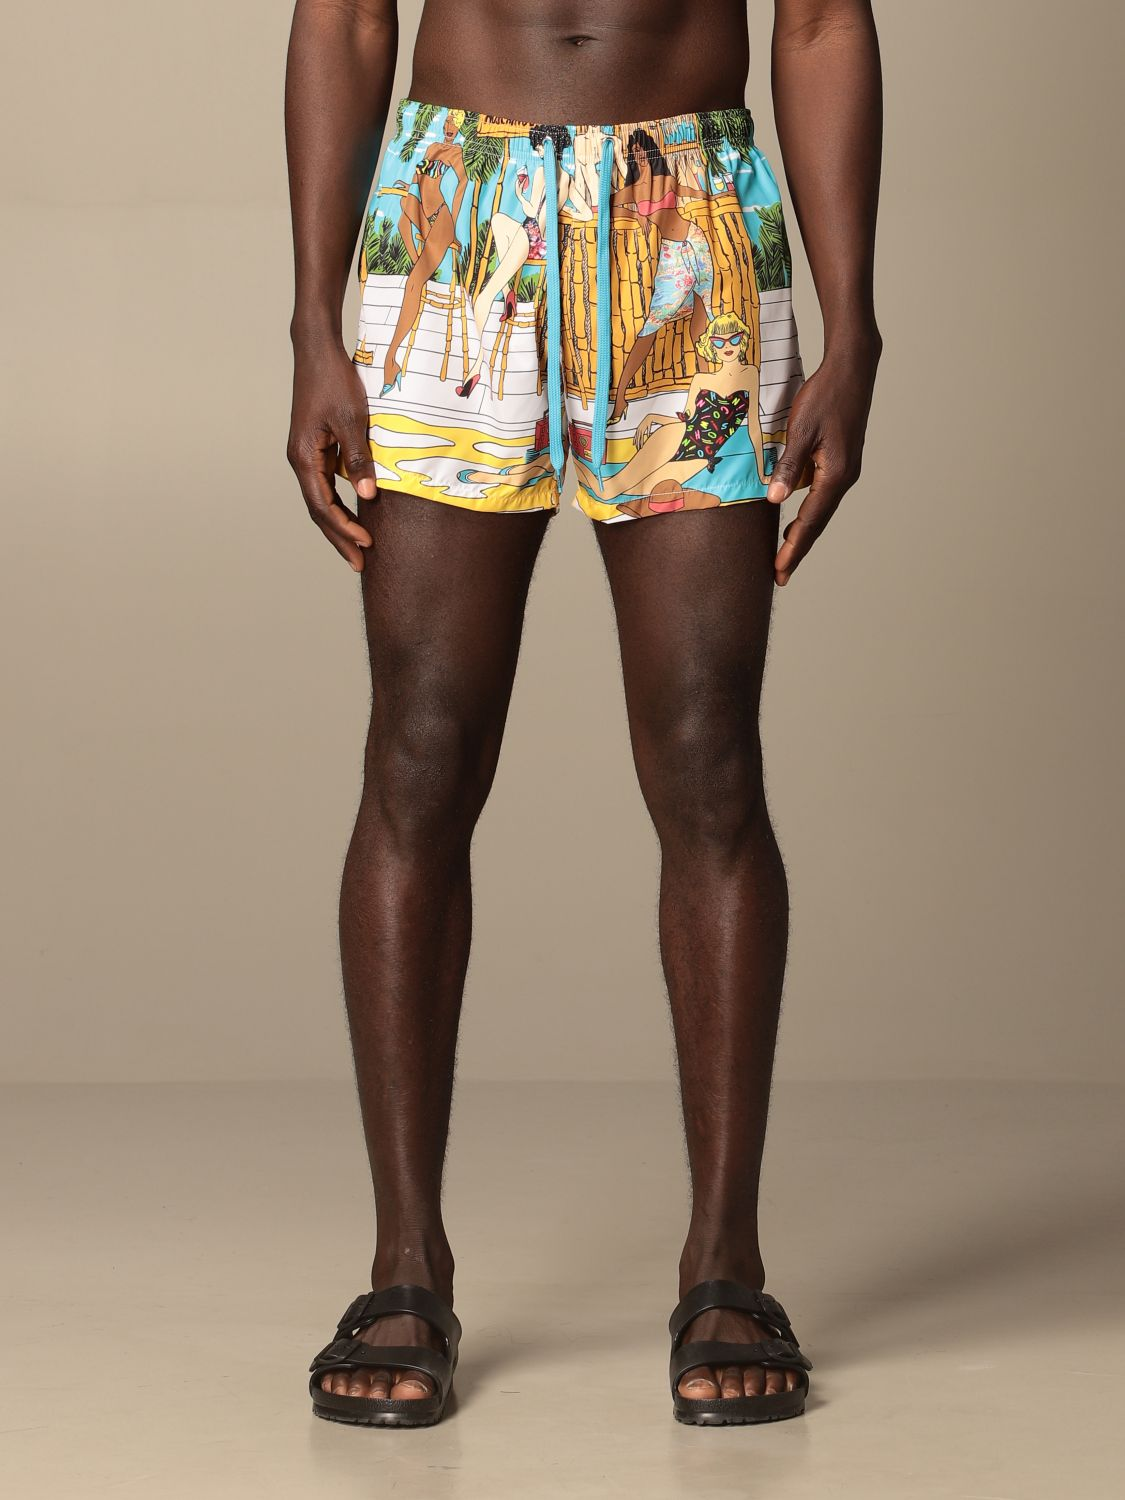 Swimsuit Boutique Moschino: Moschino Boutique printed boxer costume gnawed blue 1